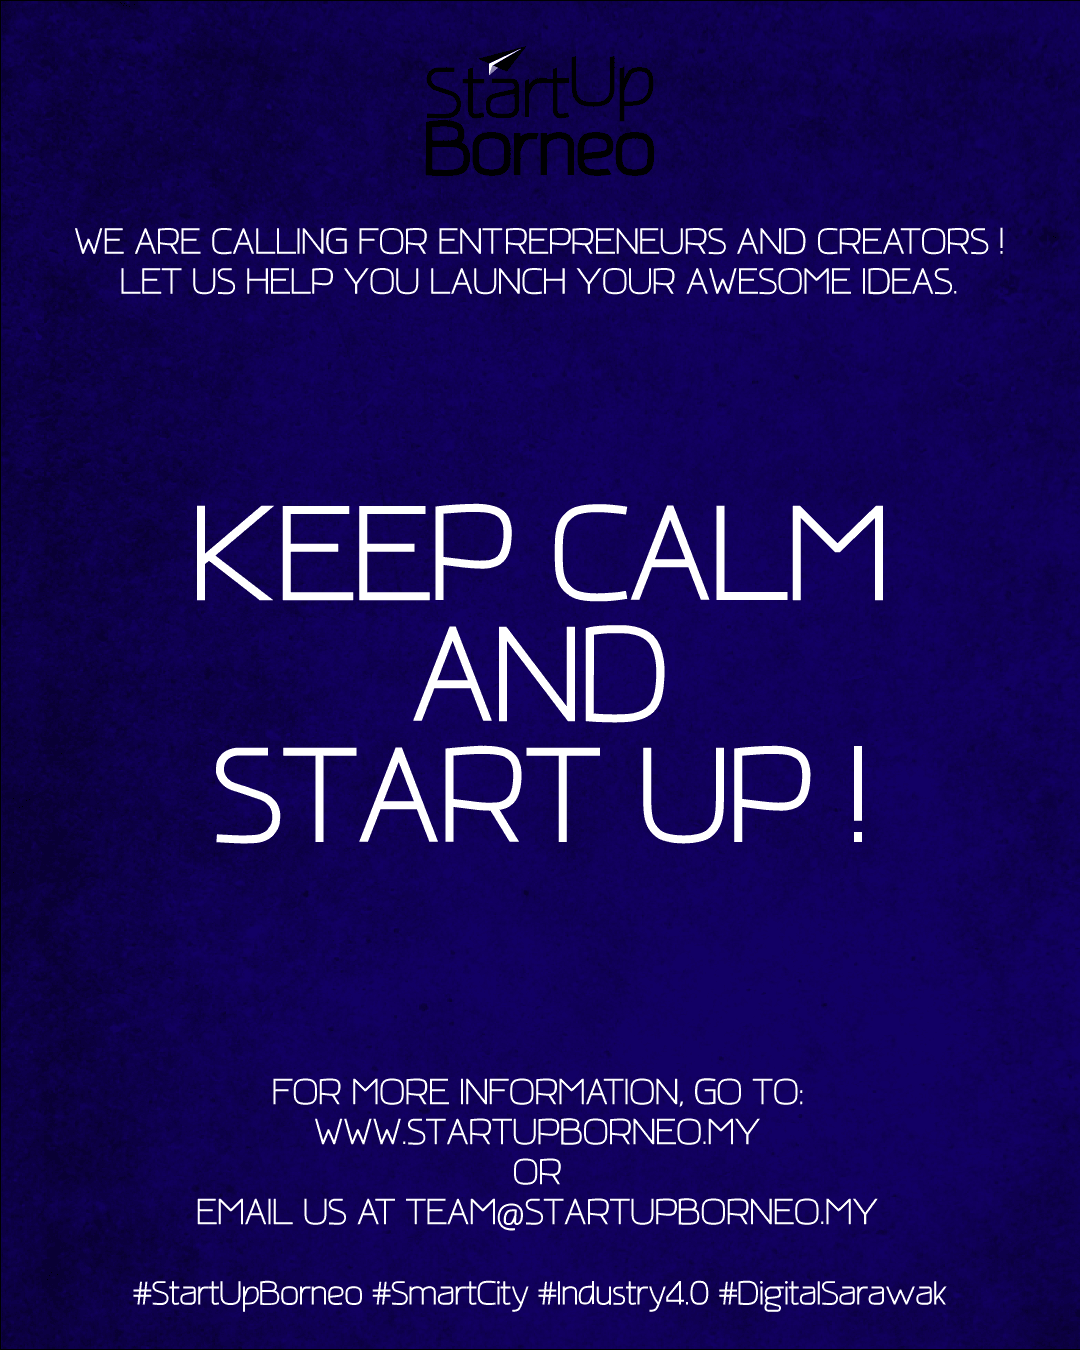 [Poster]Keep Calm and Start Up